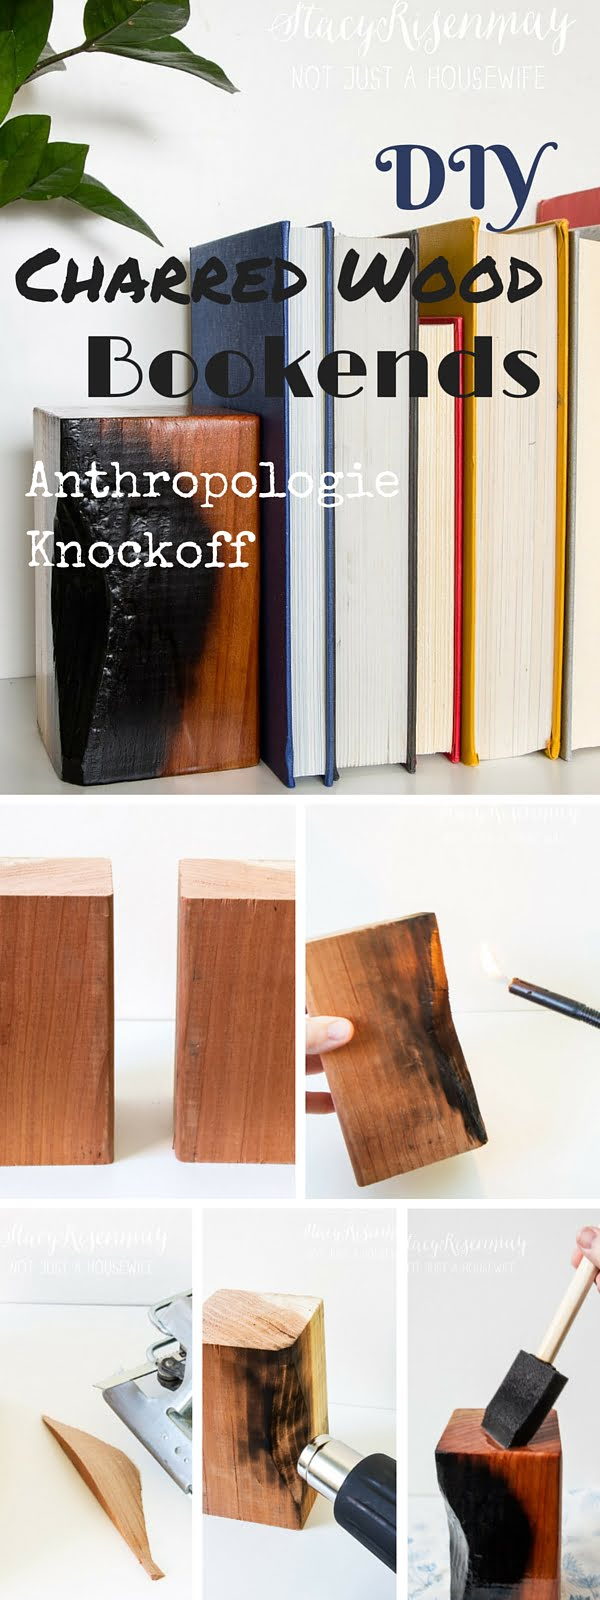 Check out the tutorial:   Charred Wood Bookends Knockoff